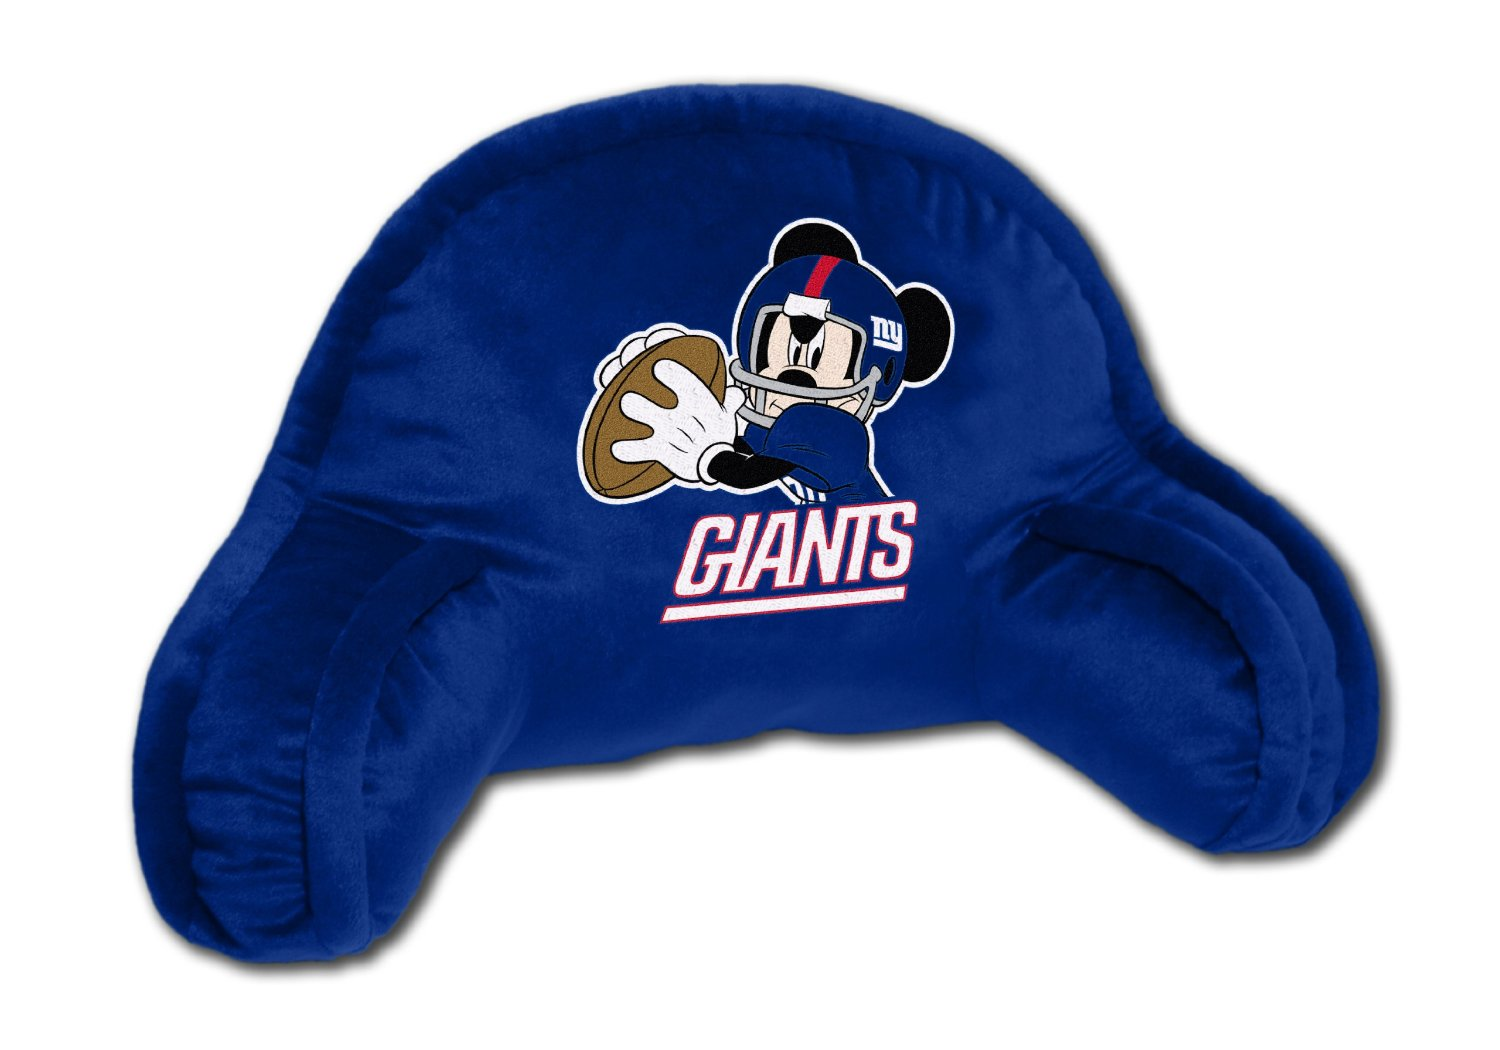 NFL New York Giants Mickey Mouse Plush 12-Inch-by-20-Inch Embroidered Bed Rest Pillow